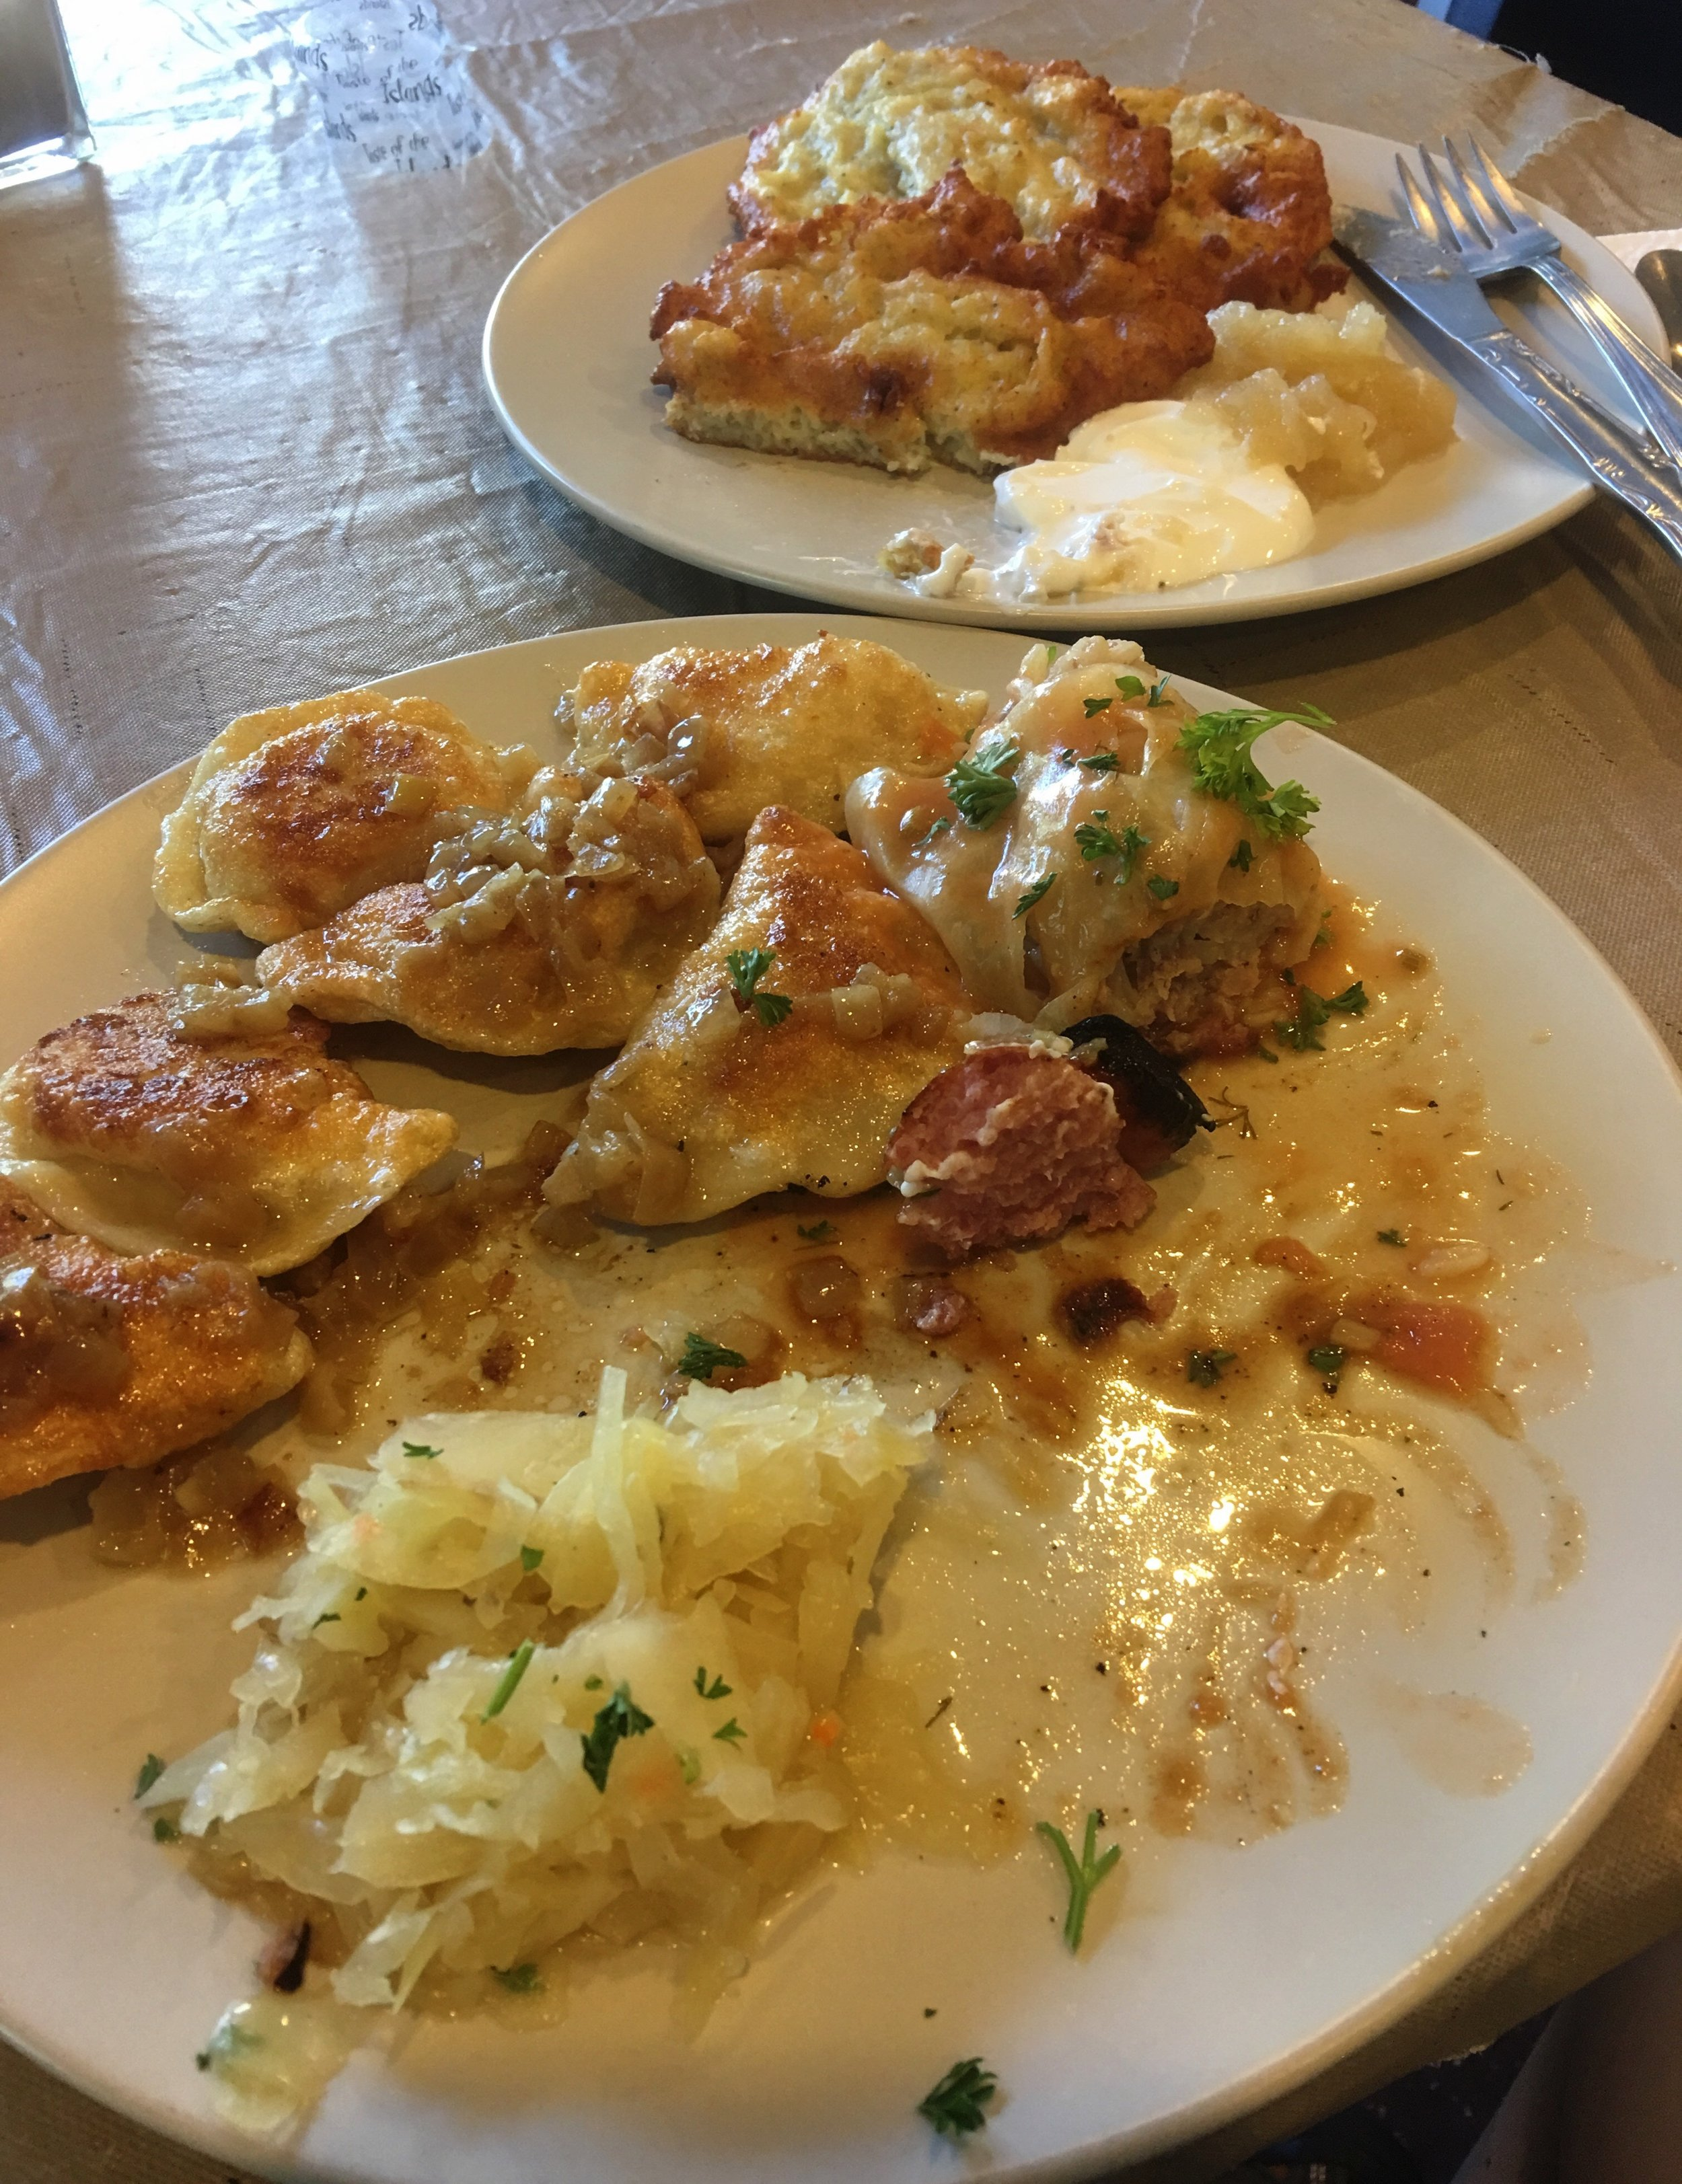 Homemade pierogis, sauerkraut, grilled kielbasa and potato pancakes with sour cream and applesauce